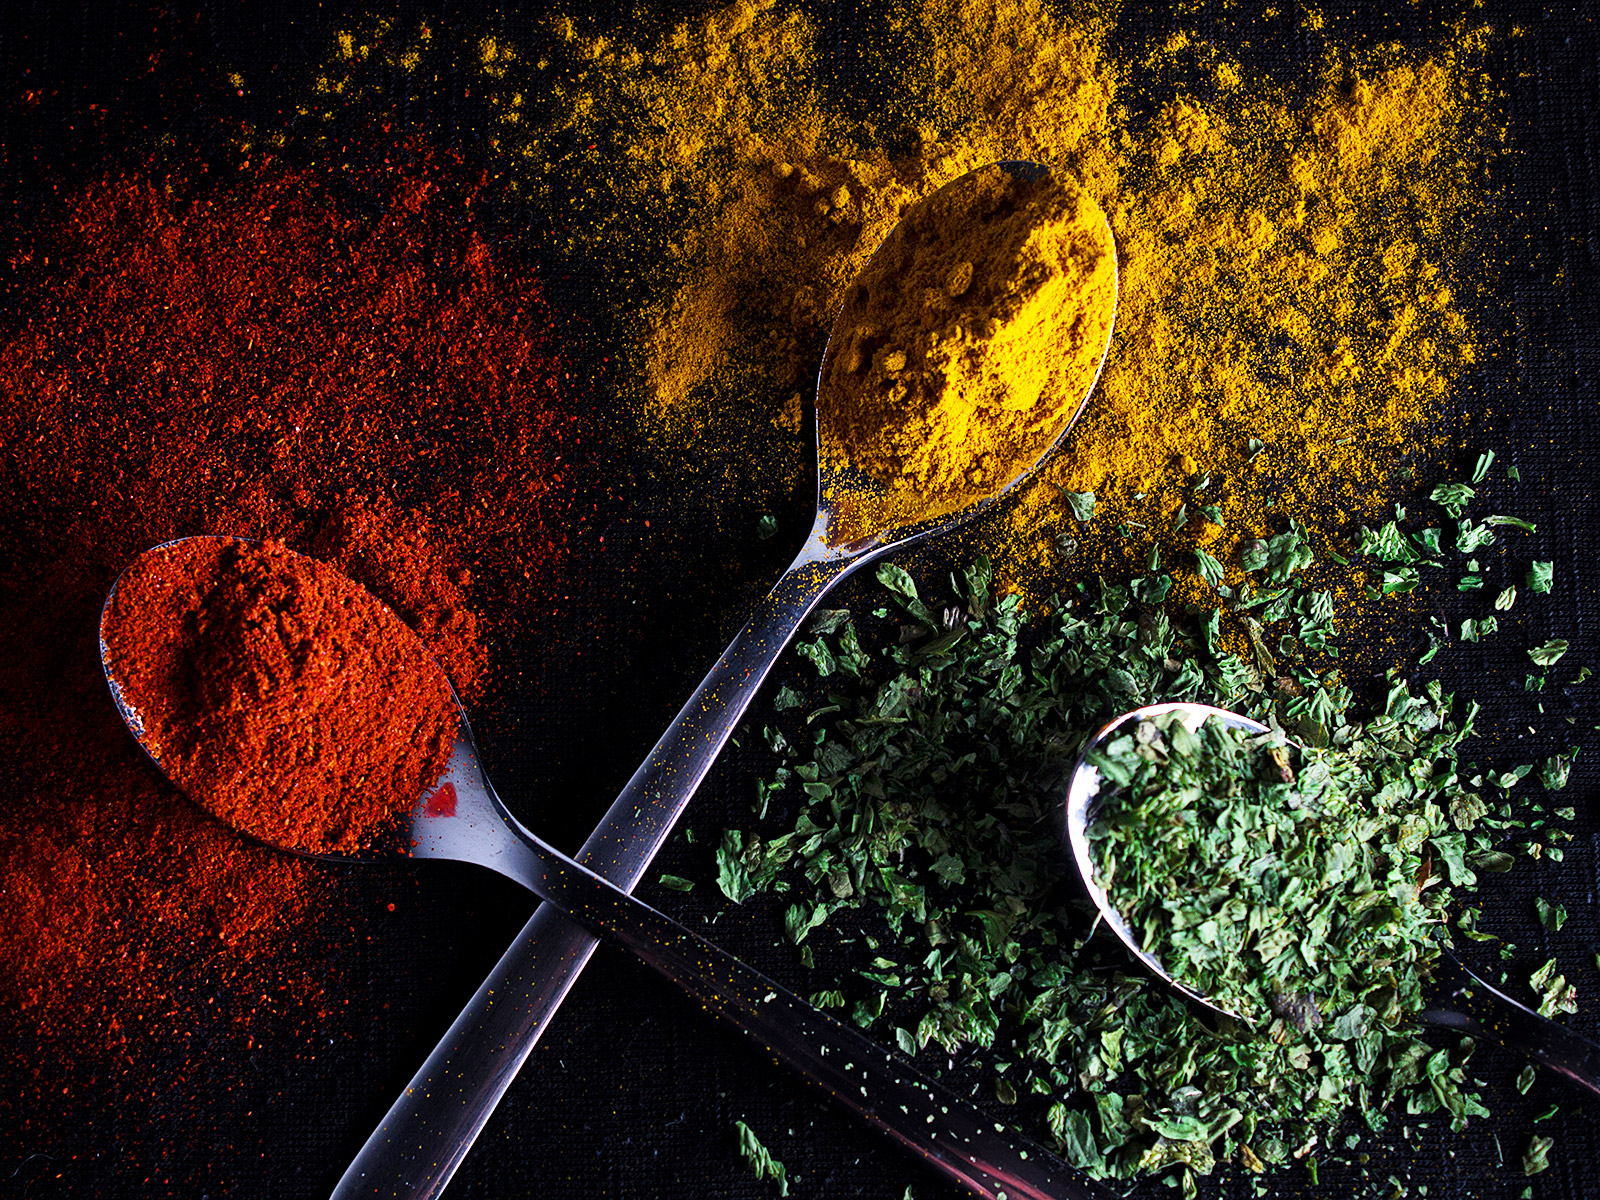 spices in science fiction books and movies